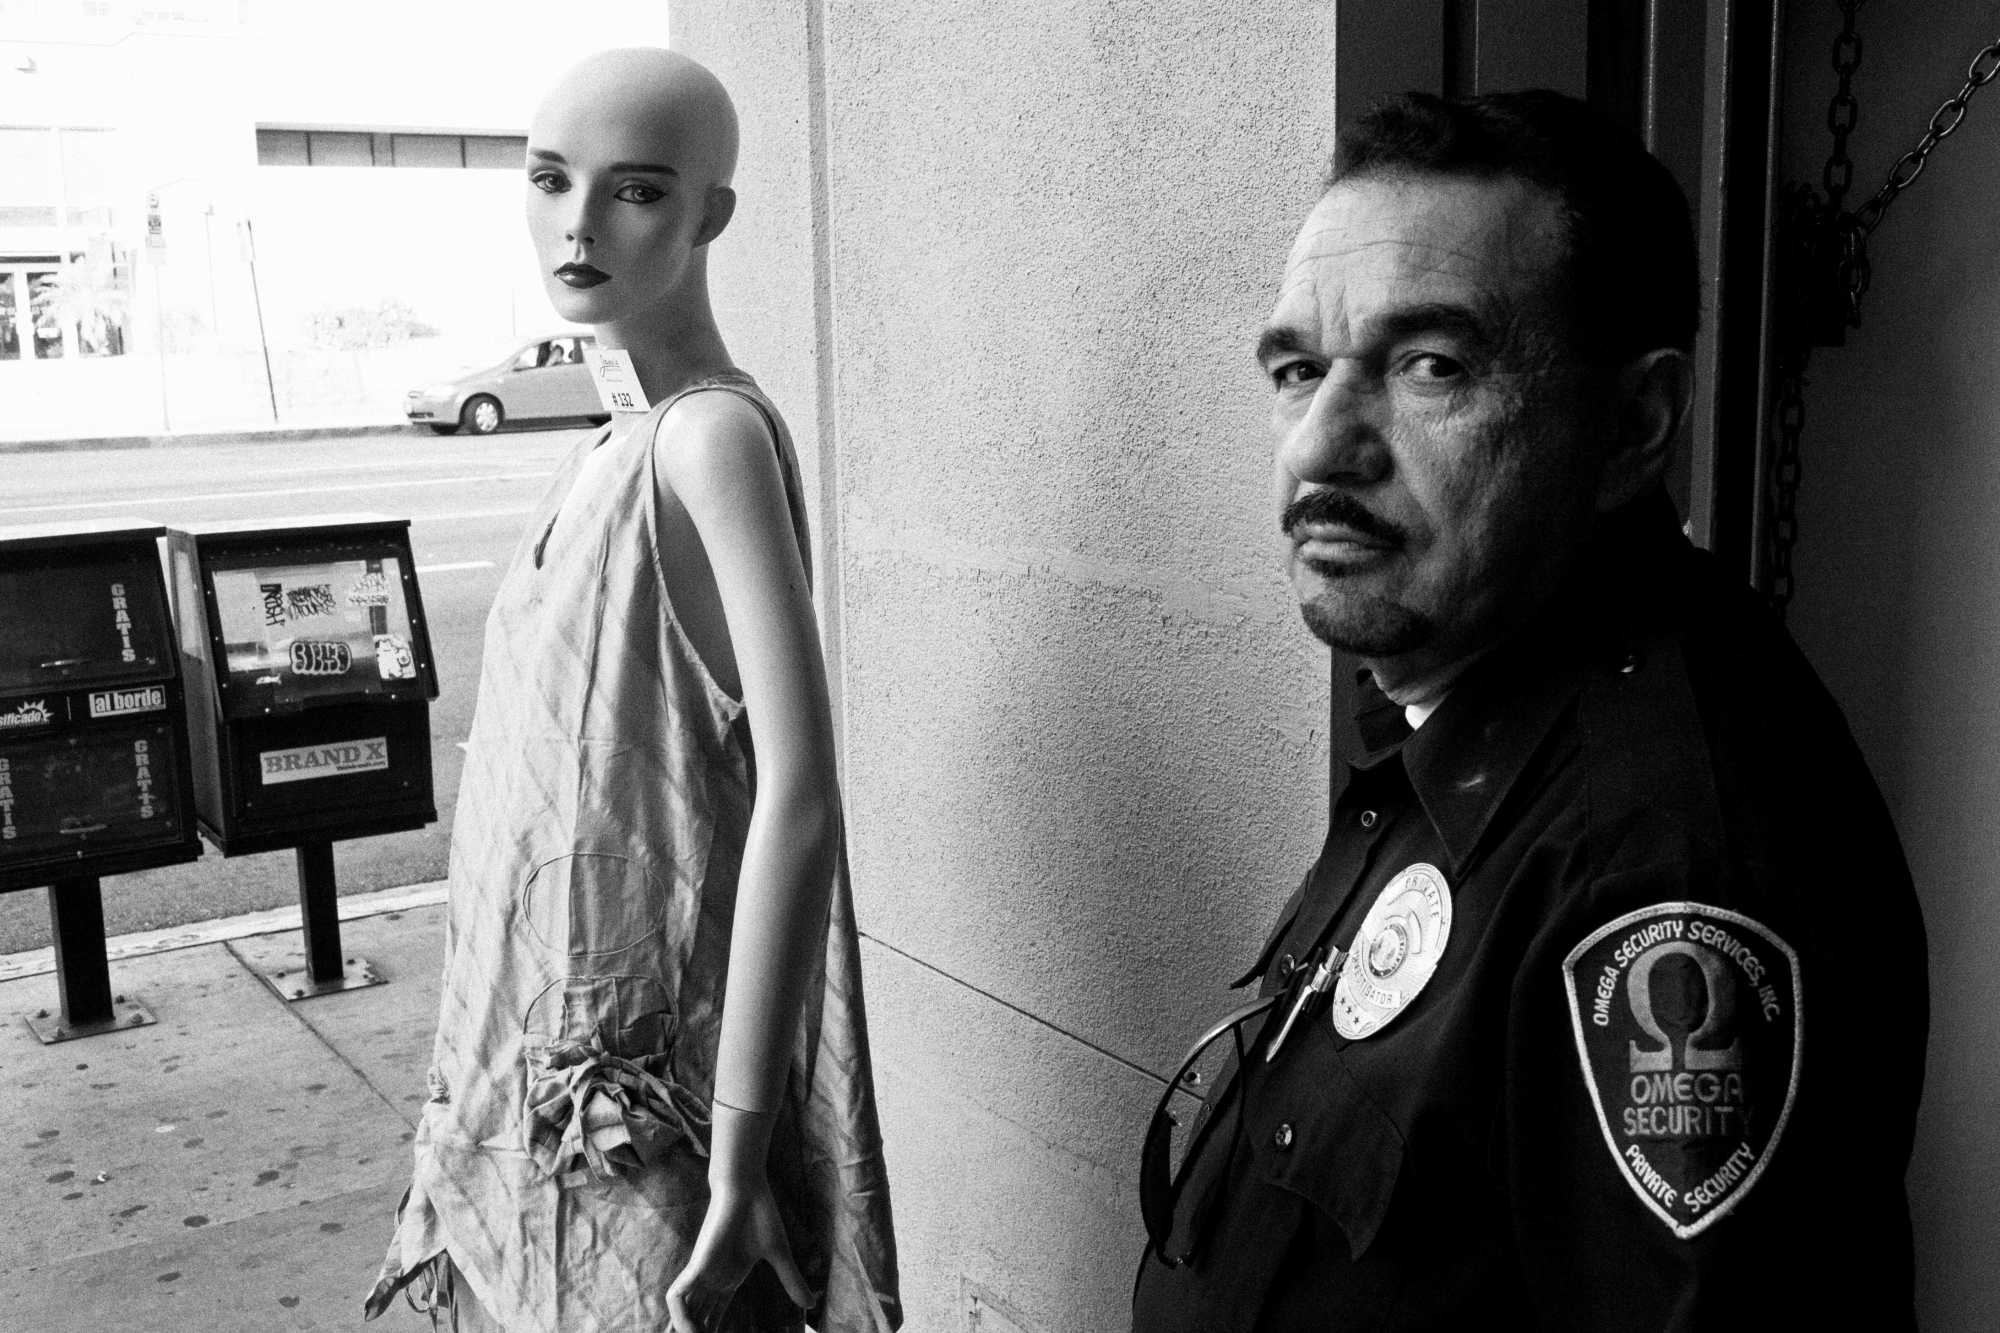 Downtown LA, 2012. Canon 5D, 35mm lens. Juxtaposition between security guard and mannequin.